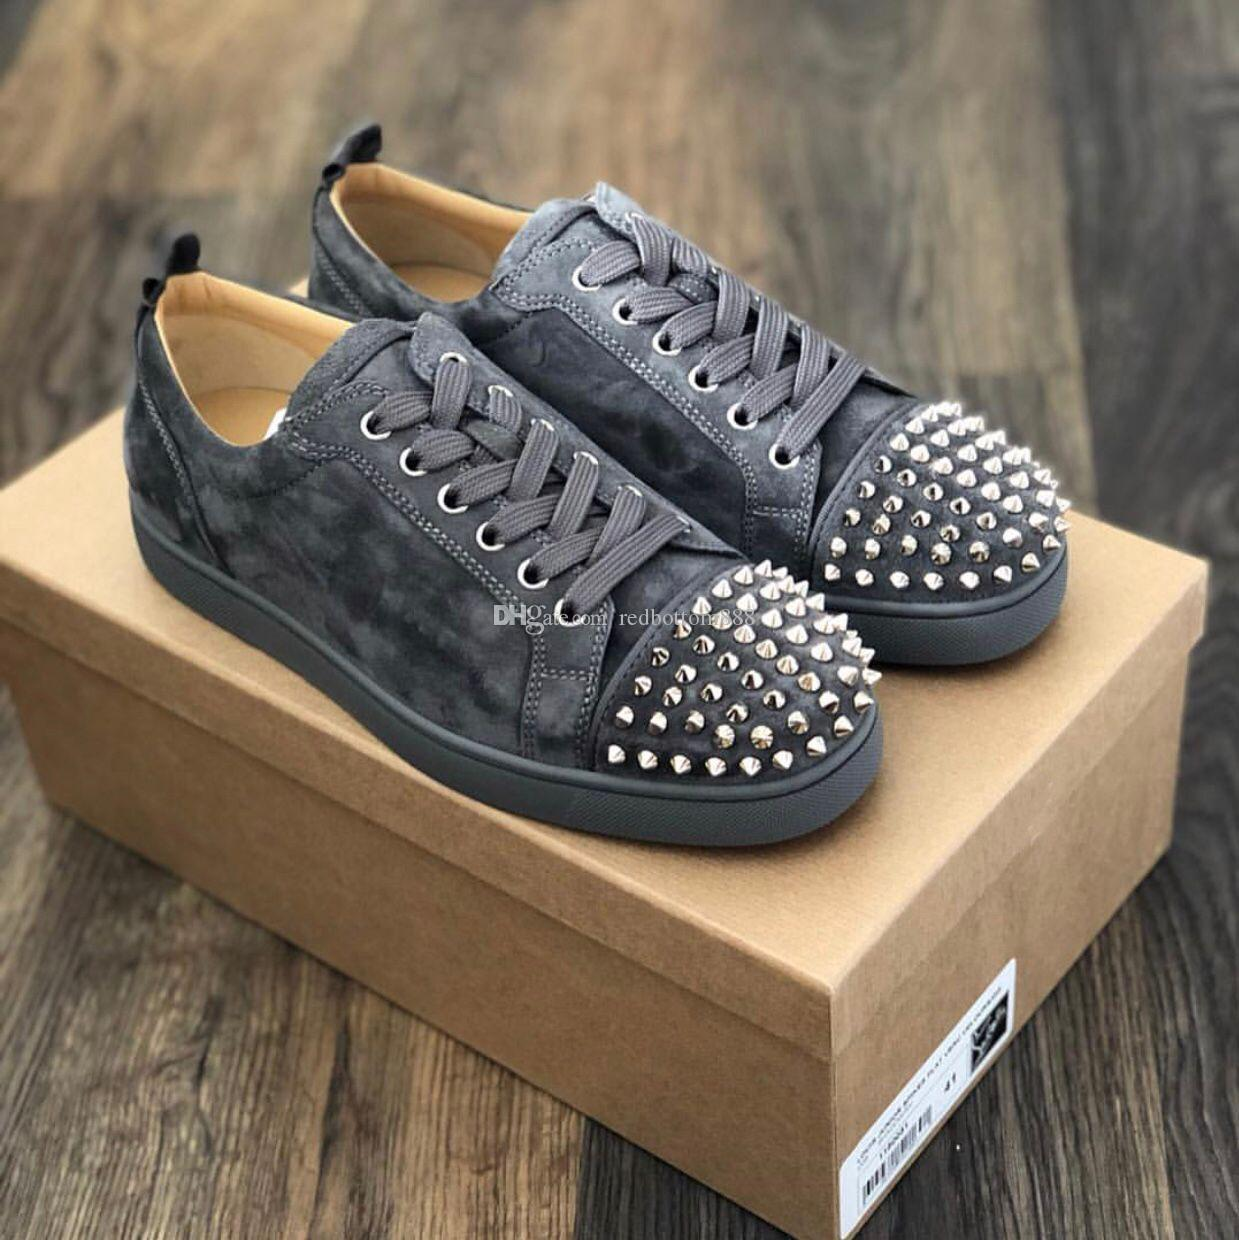 Wholesale Spikes Grey Suede Leather Red Bottom Sneaker Shoes Perfect Quality Low Top Rivets Women,Men Factory Price Casual Walking